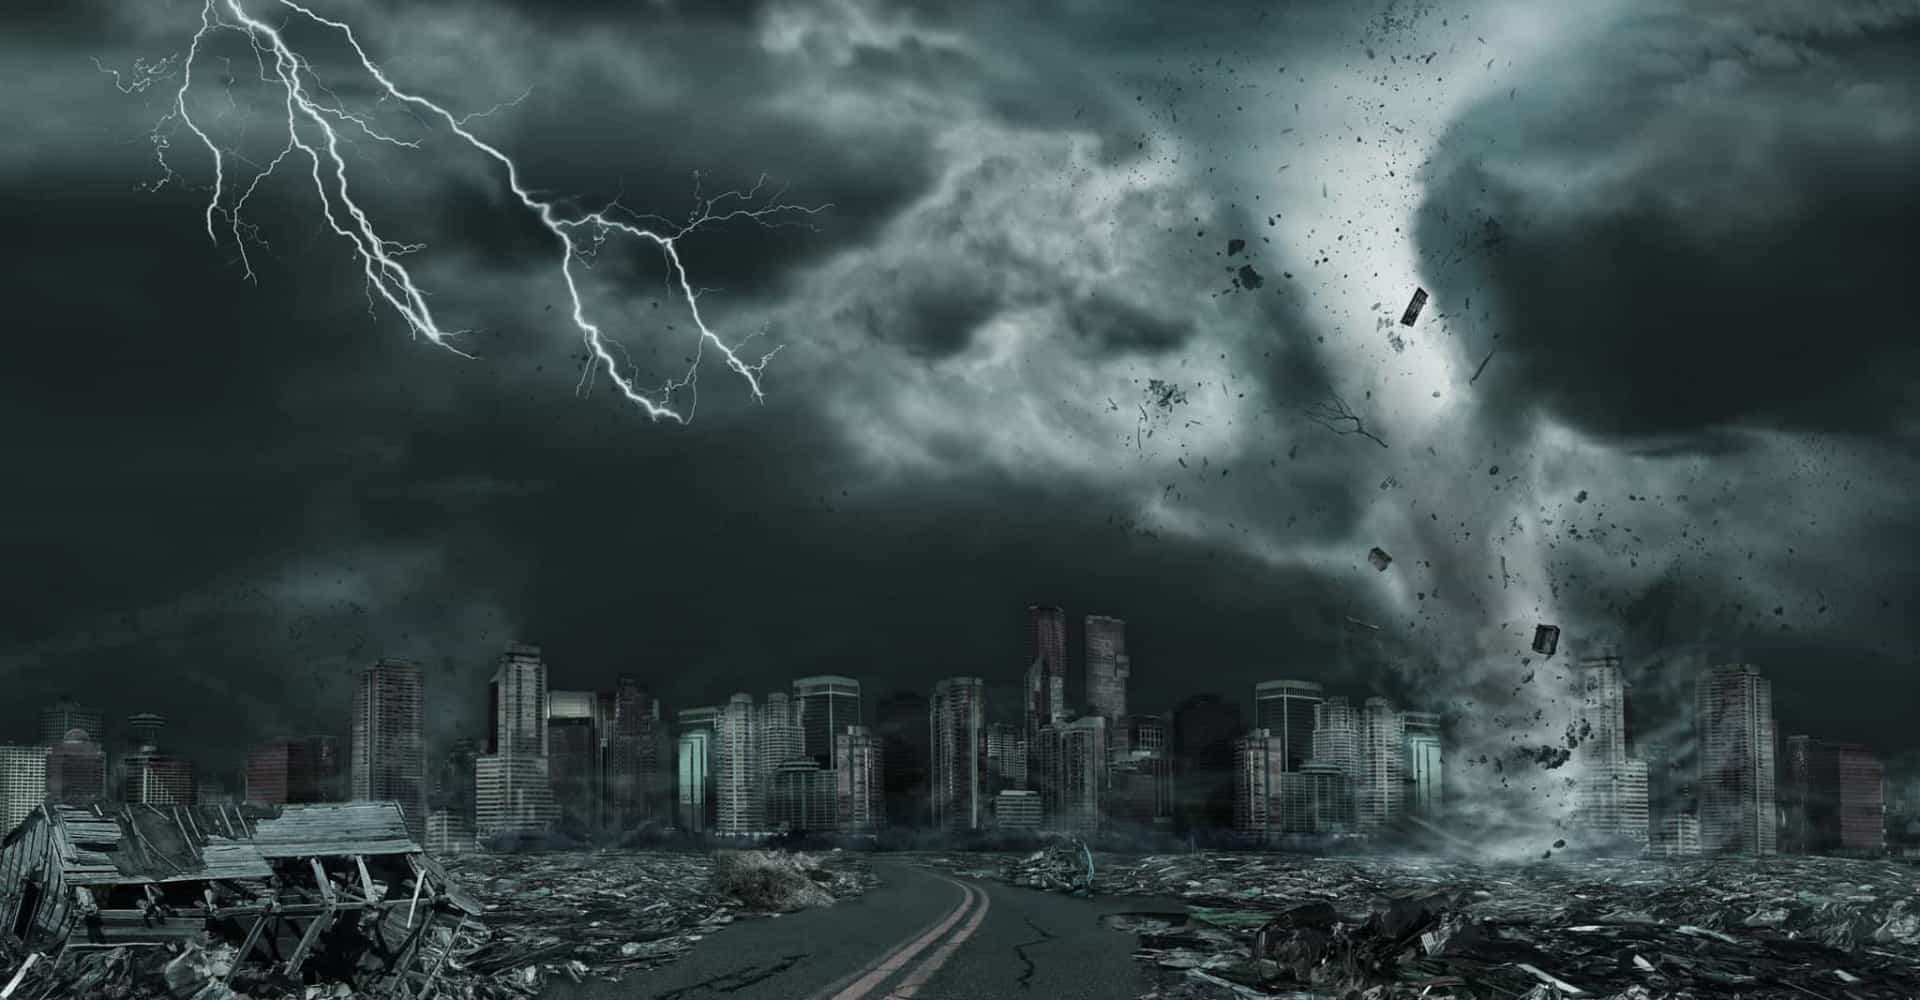 The end of the world is near!